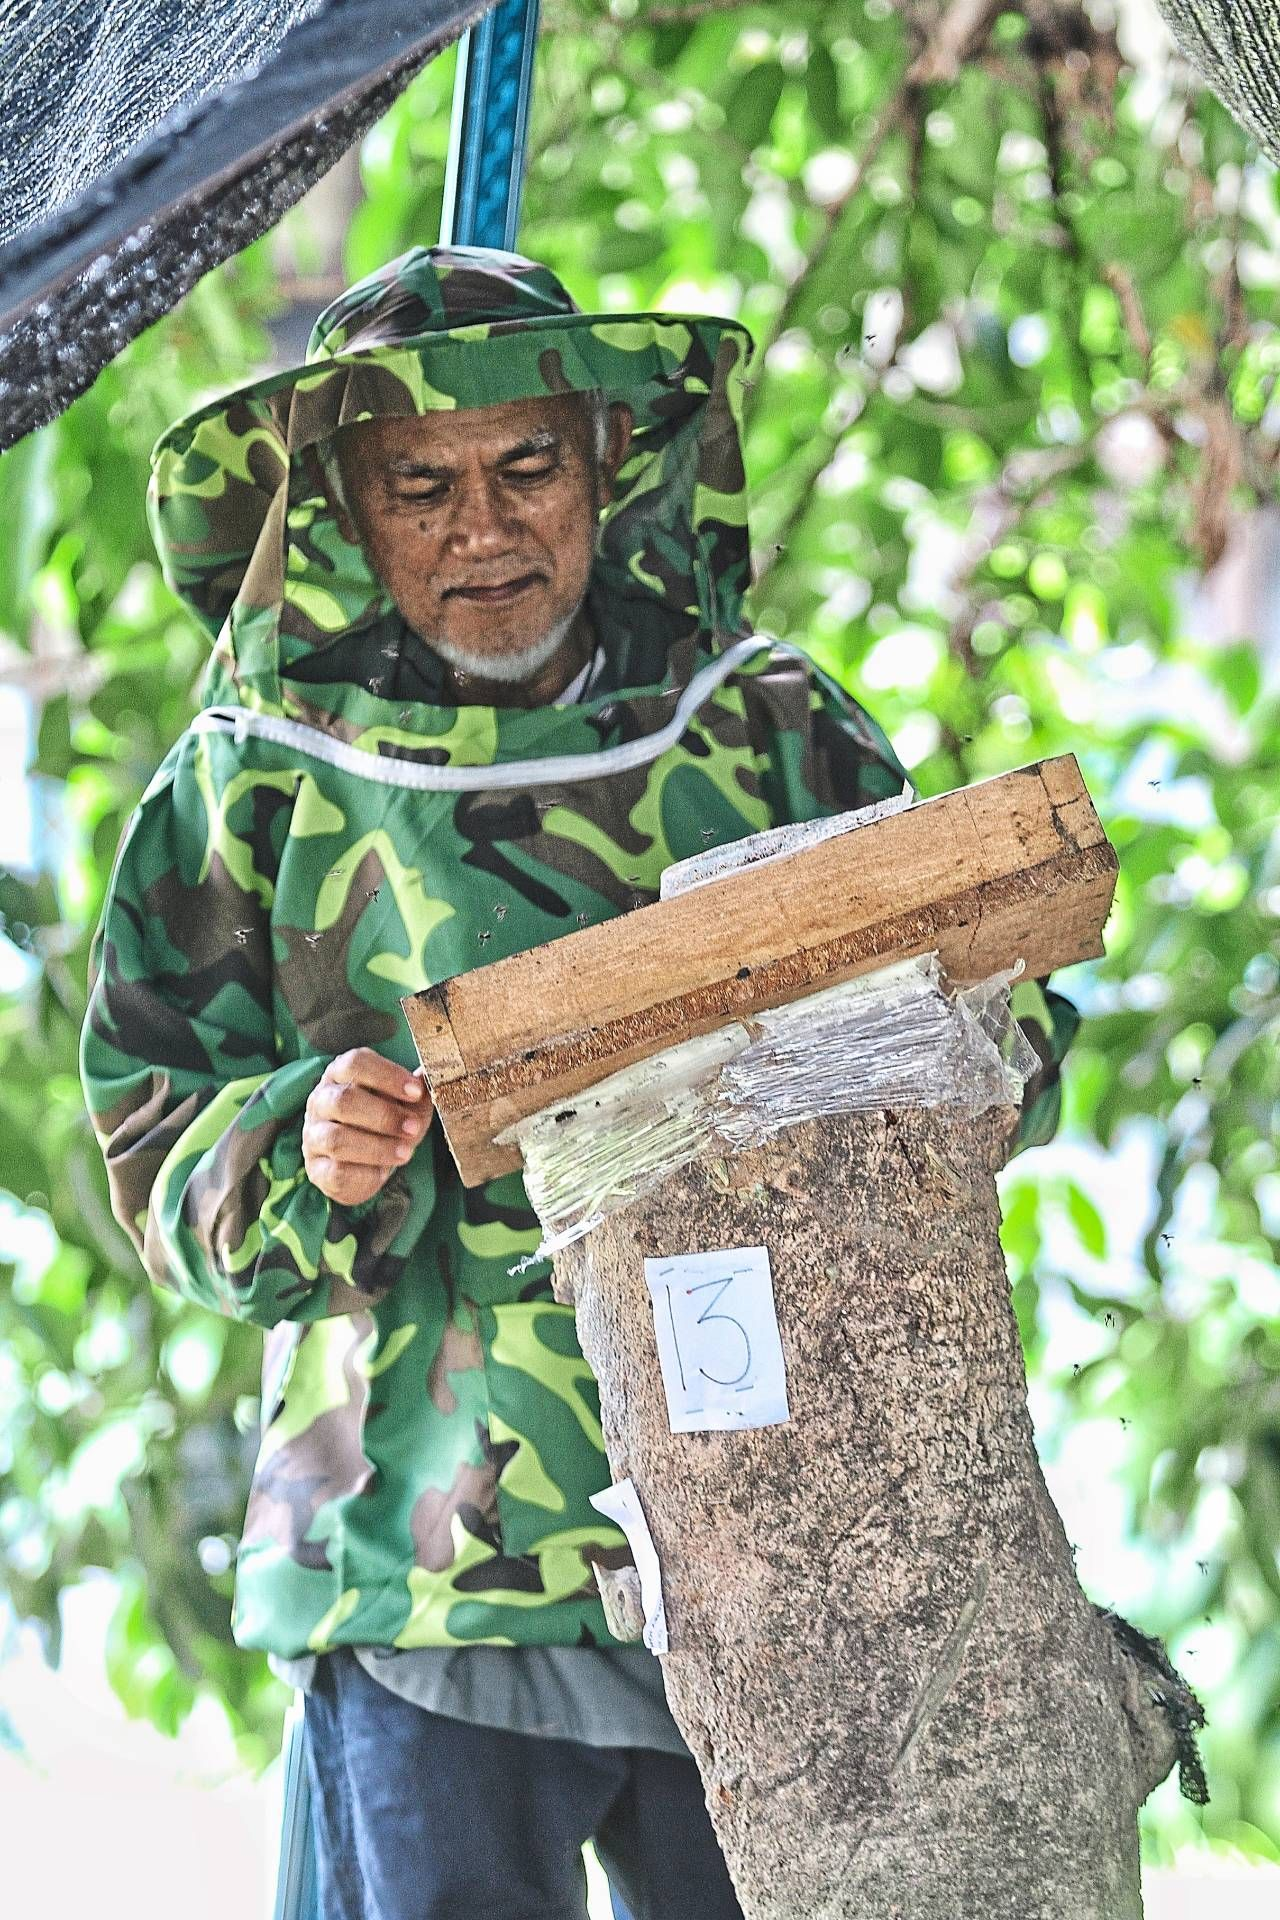 Kampung Selamat resident Tengku Mohd Shah Abdul Rahman looking after the stingless bee hive in his compound.